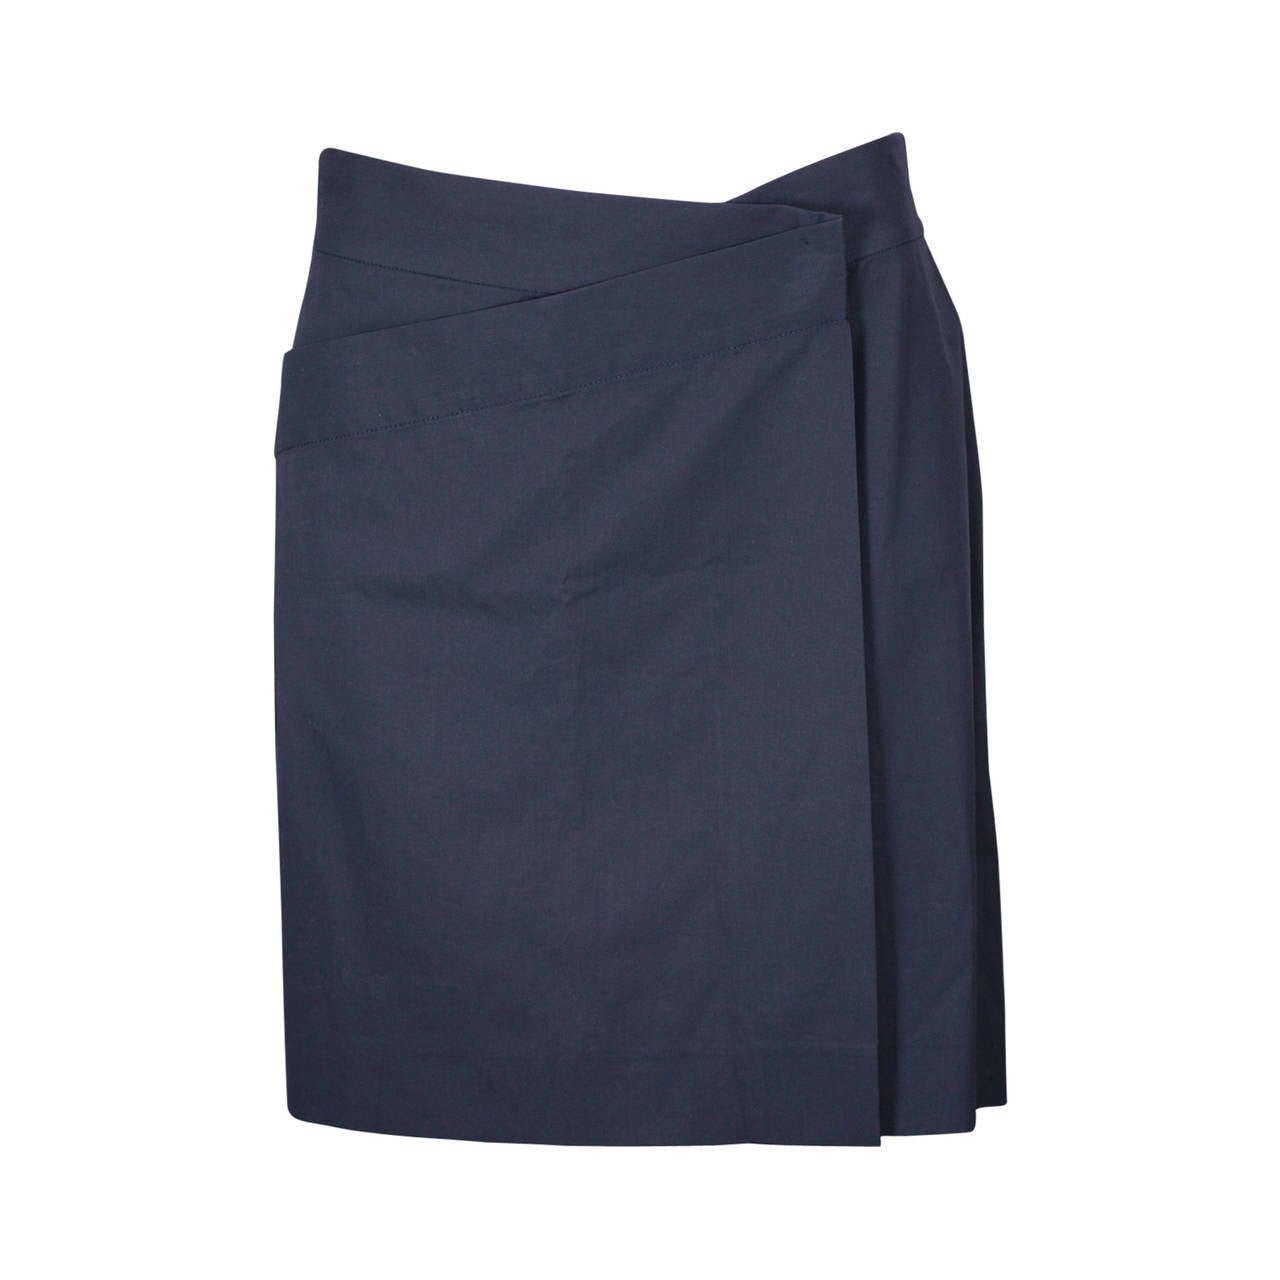 Jil Sander Minimalist Cotton Poplin Wrap Skirt